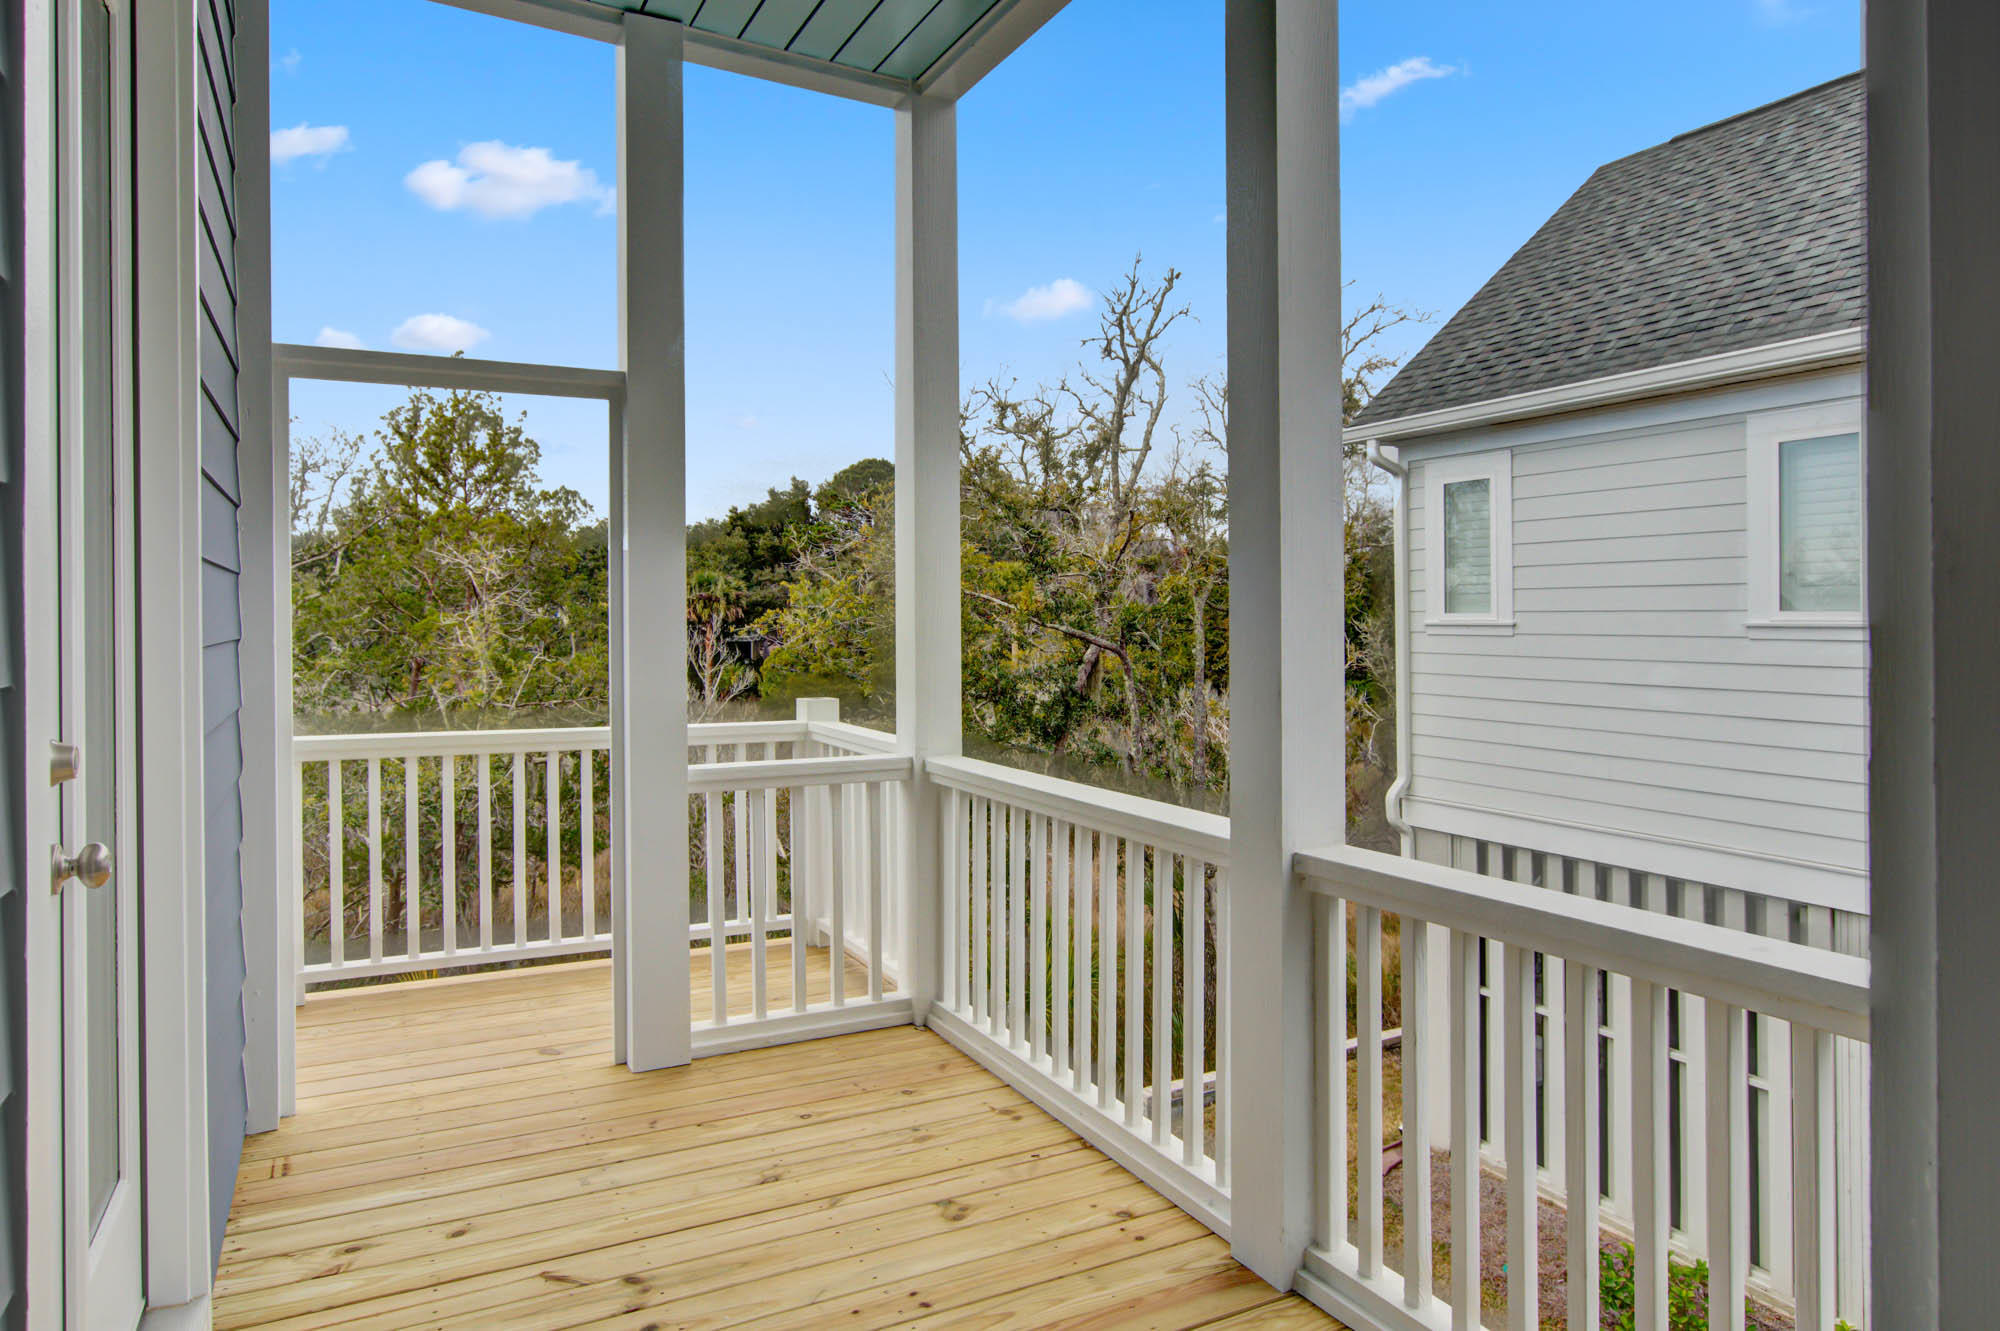 Stratton by the Sound Homes For Sale - 1541 Menhaden, Mount Pleasant, SC - 31